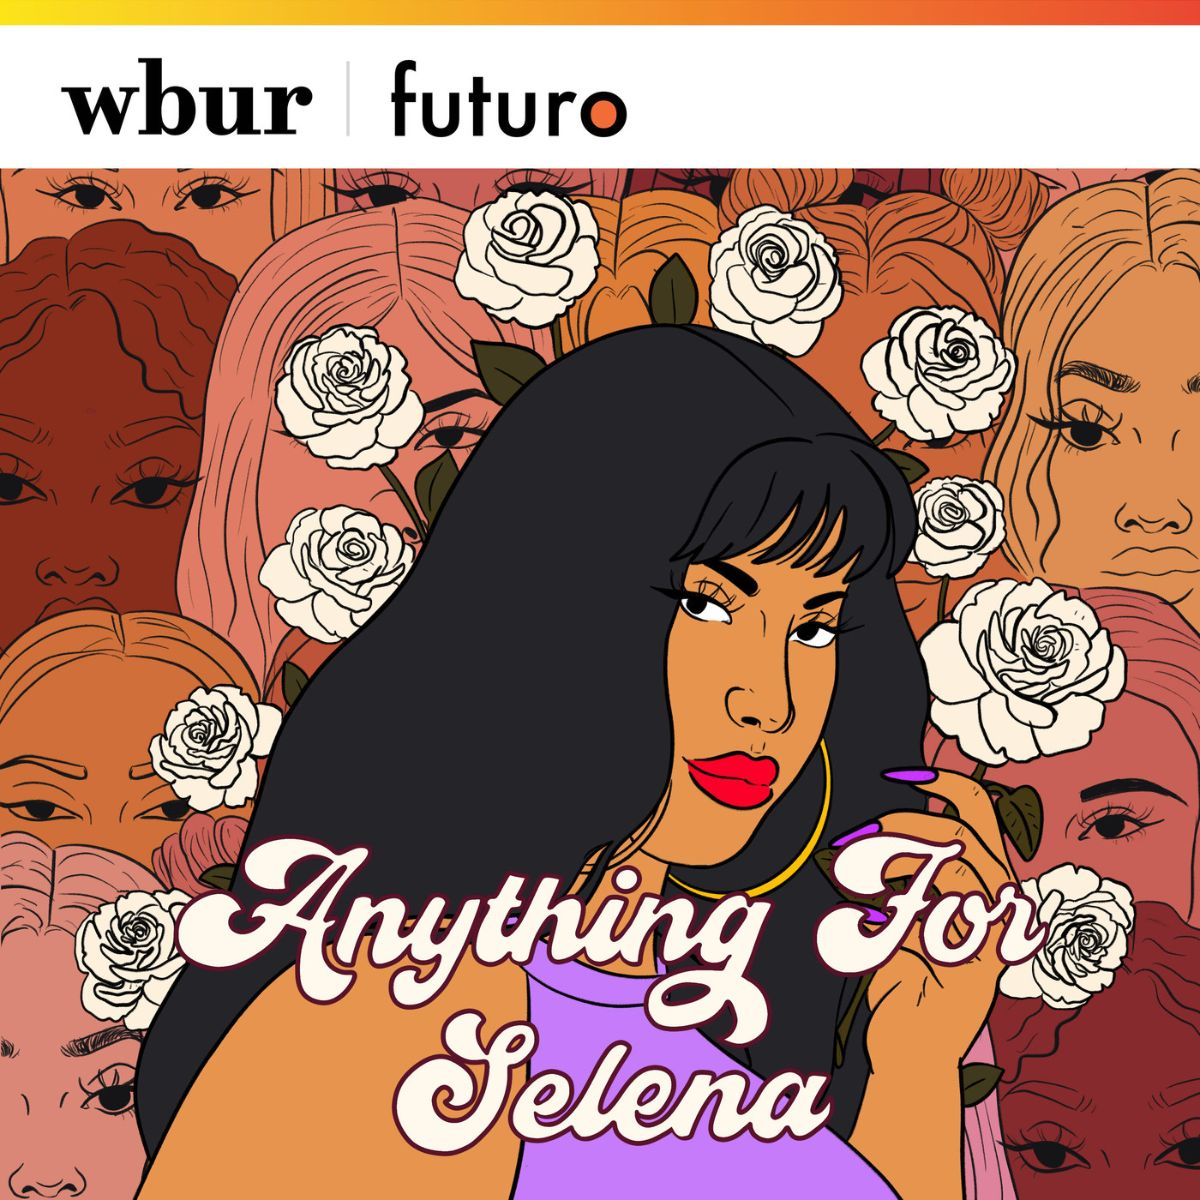 """A drawing of the musician Selena, a Mexican American woman with black hair, lightly browned skin, hoop earrings, and red lipstick, She wears a light purple tank top and is holding her hand up by her face, and she's wearing pink acrylic nails. She's surrounded by white roses and the words """"Anything for Selena"""" in white. In the background are drawings of women's faces in red, pink, orange, and yellow. In the top left corner are the WBUR and Futuro logos in black text on a white border."""